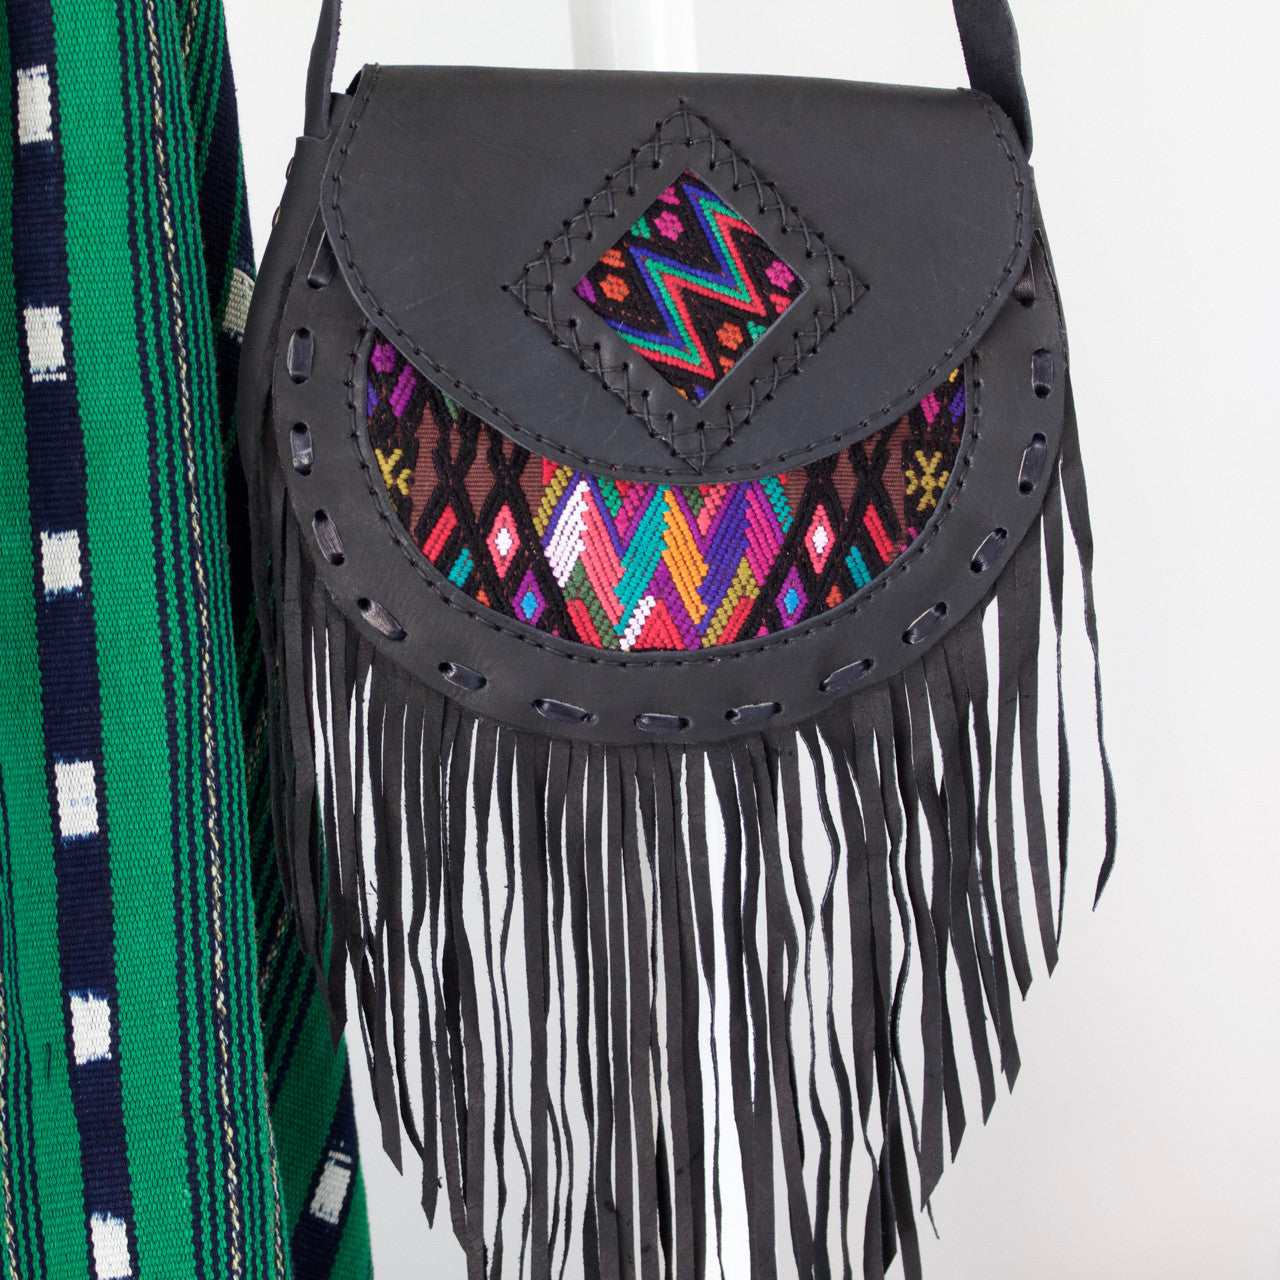 Solola Fringe Bag - Black  Shoulder Bag Multi Zigzag - Cielo Collective handmade with tradition creativity and integrity